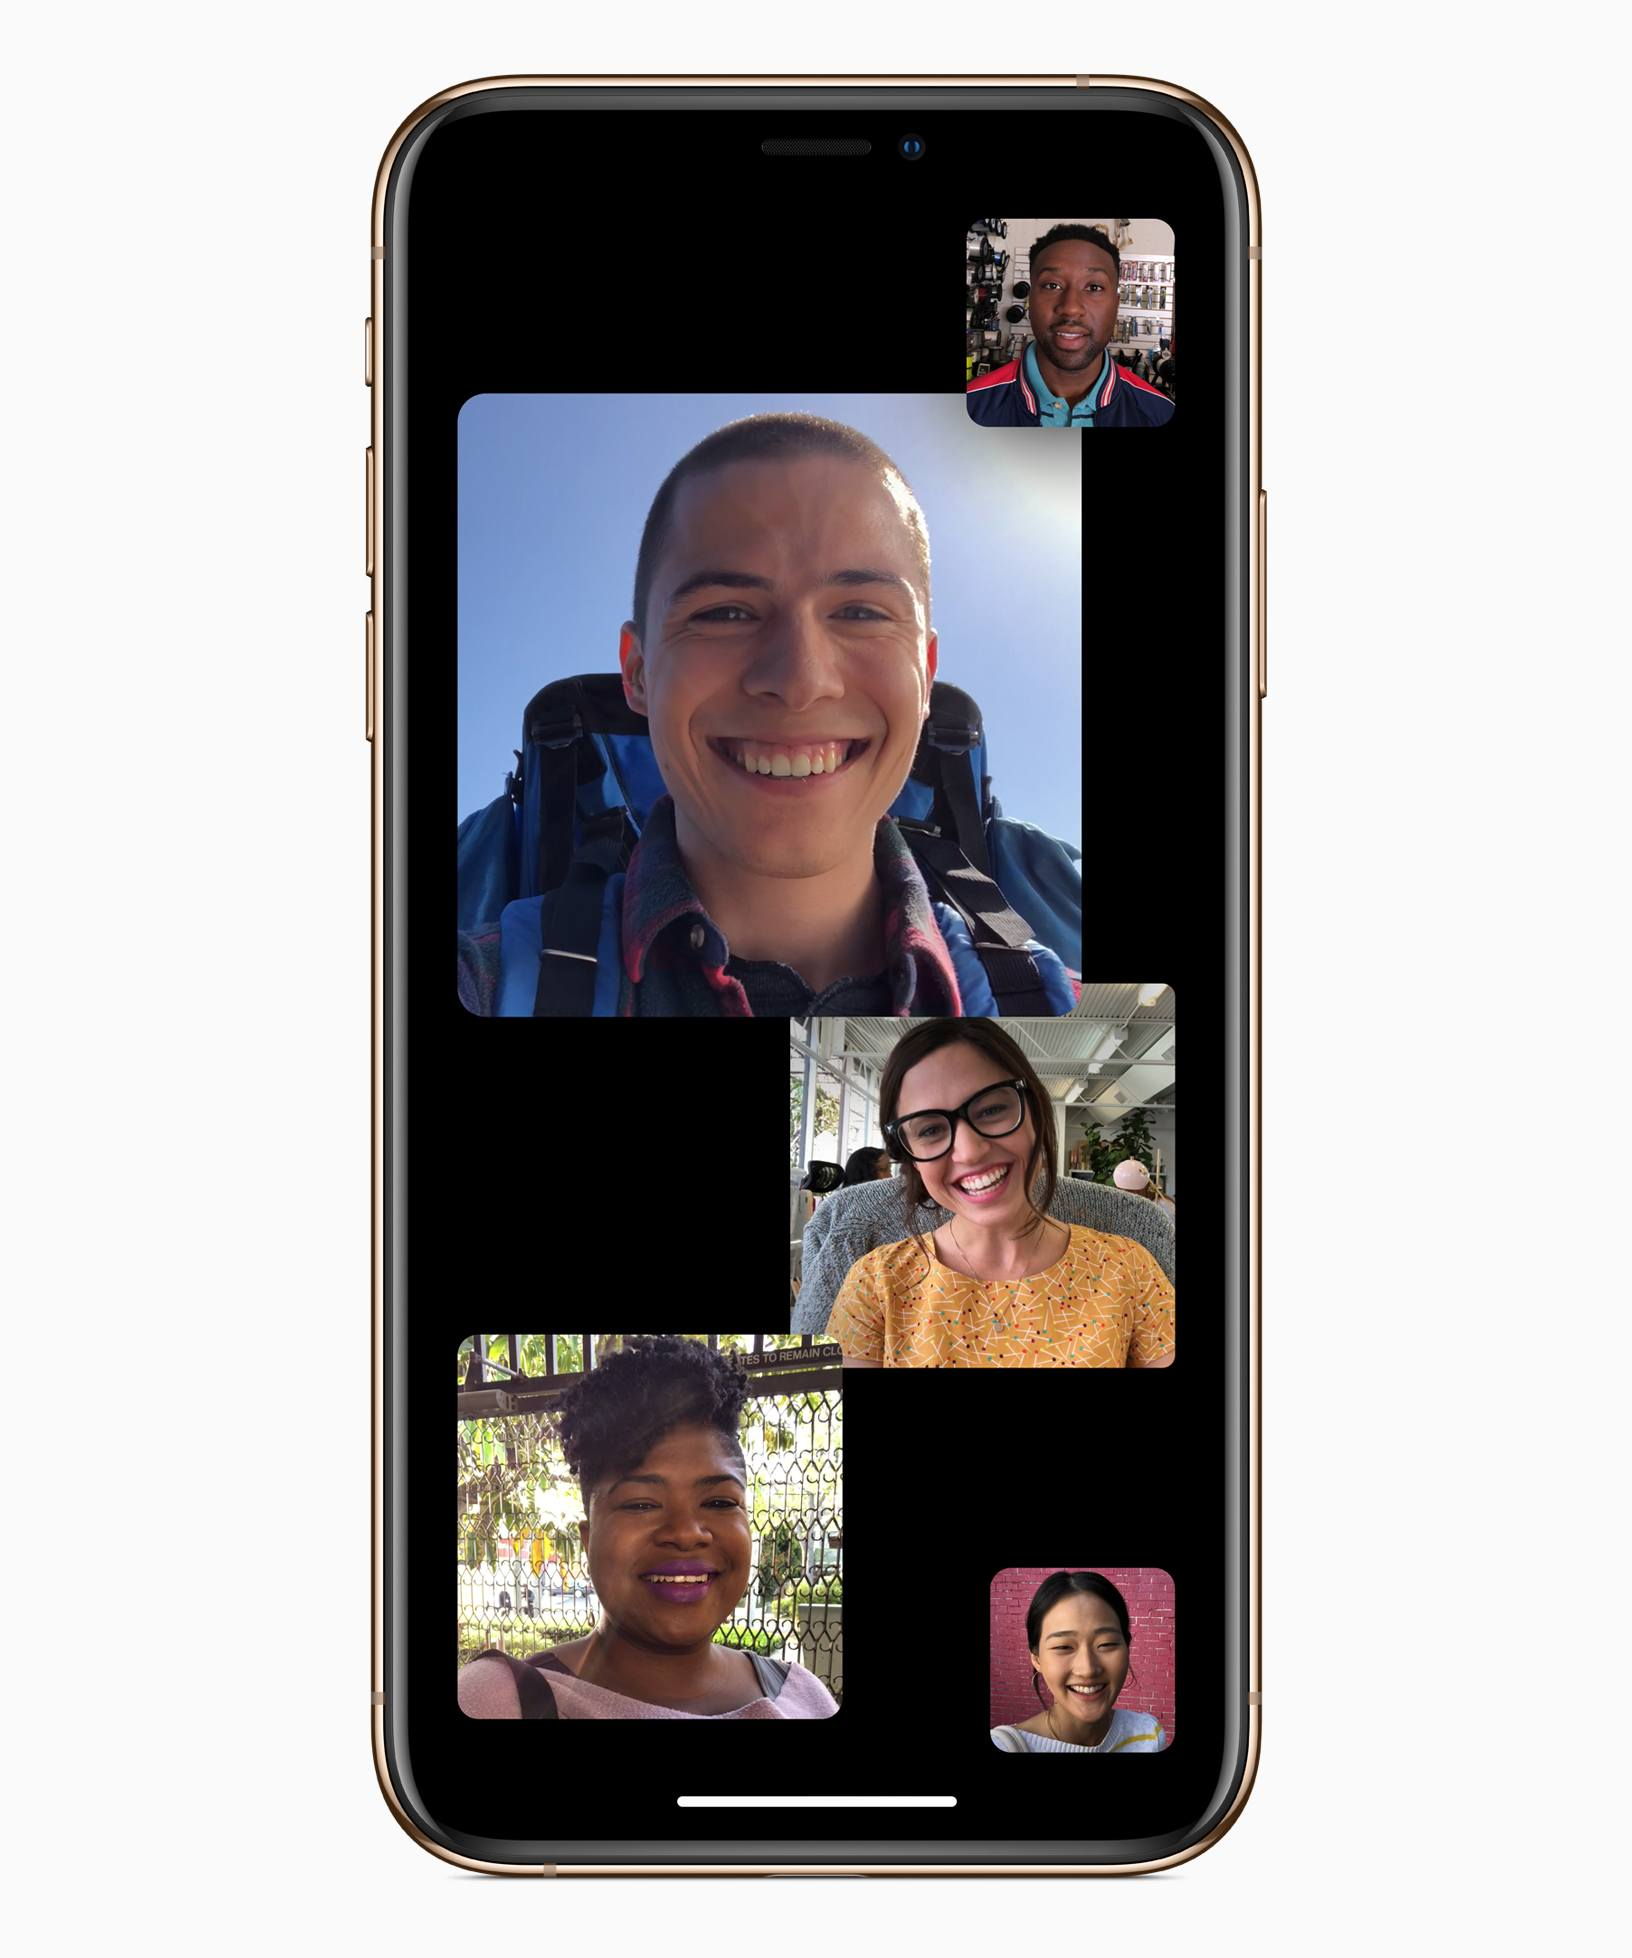 The Moment We've All Been Waiting For—Apple's New Update That Launches Today Will Reportedly Include Group FaceTime